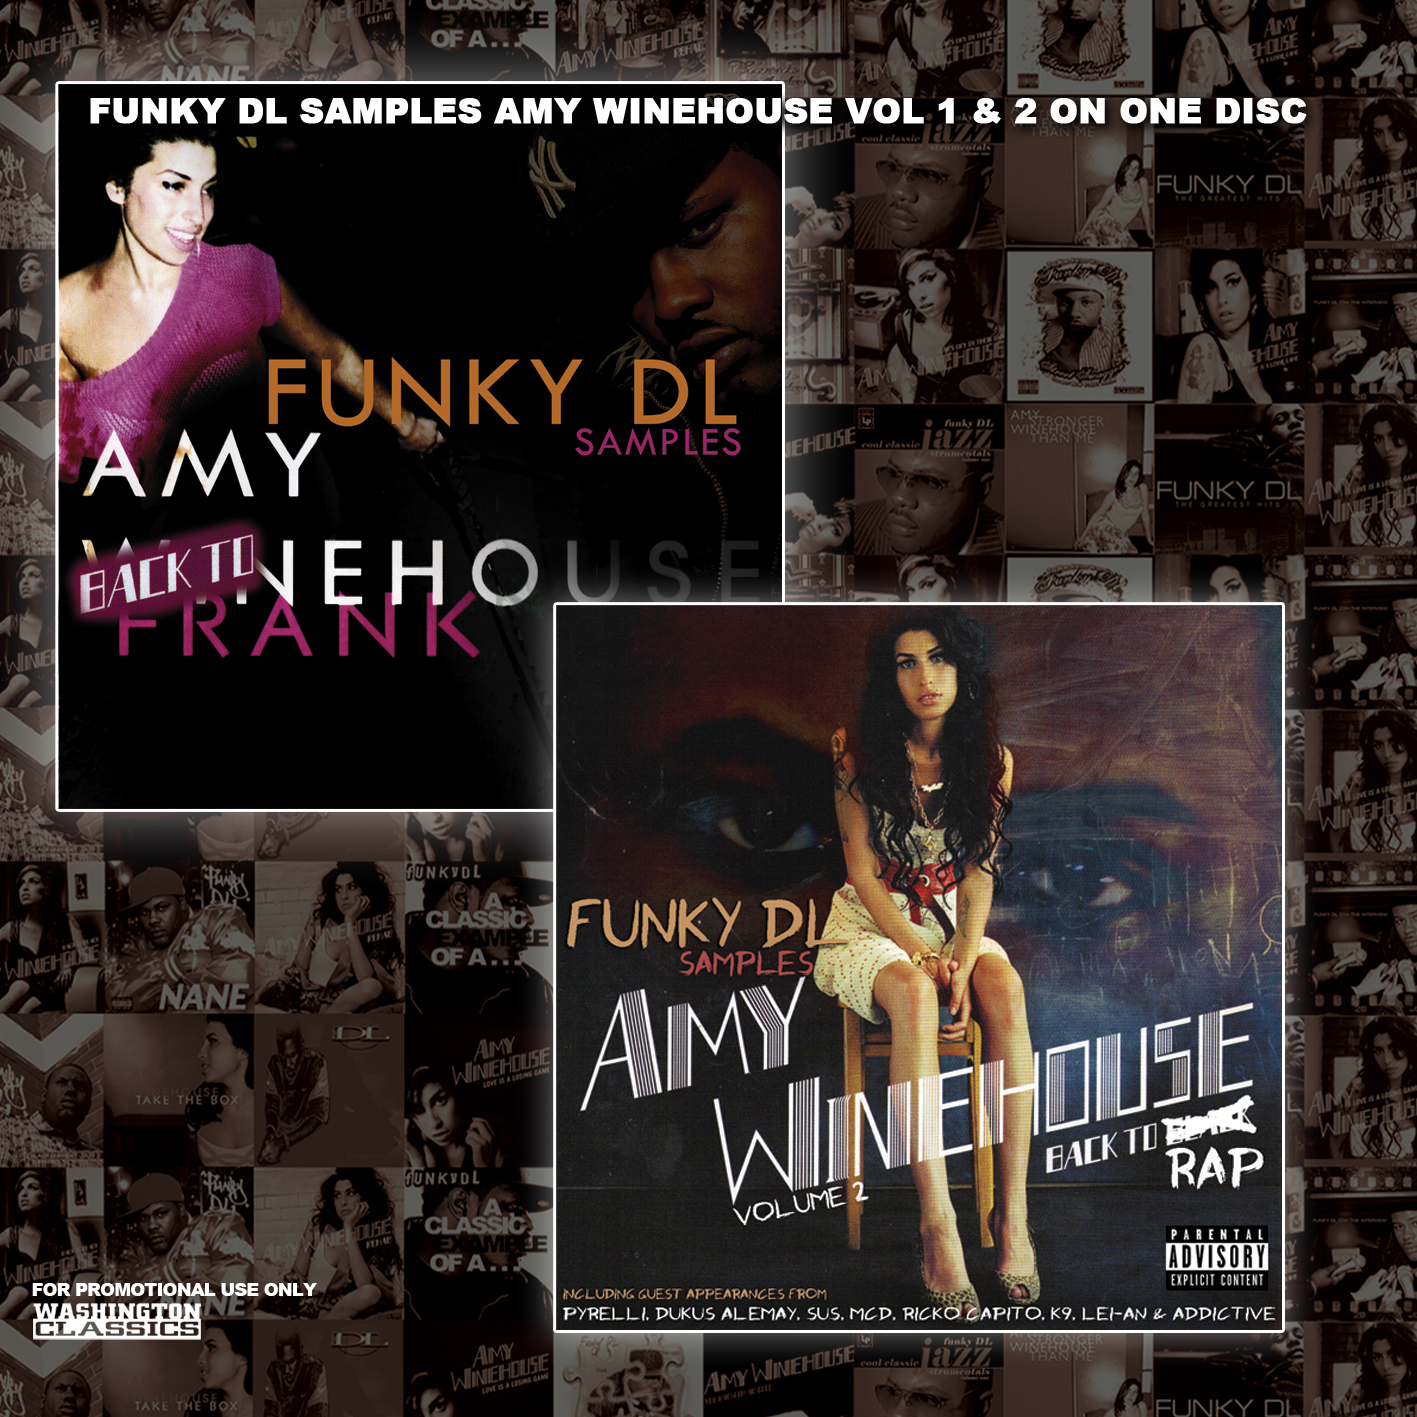 Funky DL - Back To Frank & Back To Rap (Funky DL Samples Amy Winehouse Volumes 1 & 2)